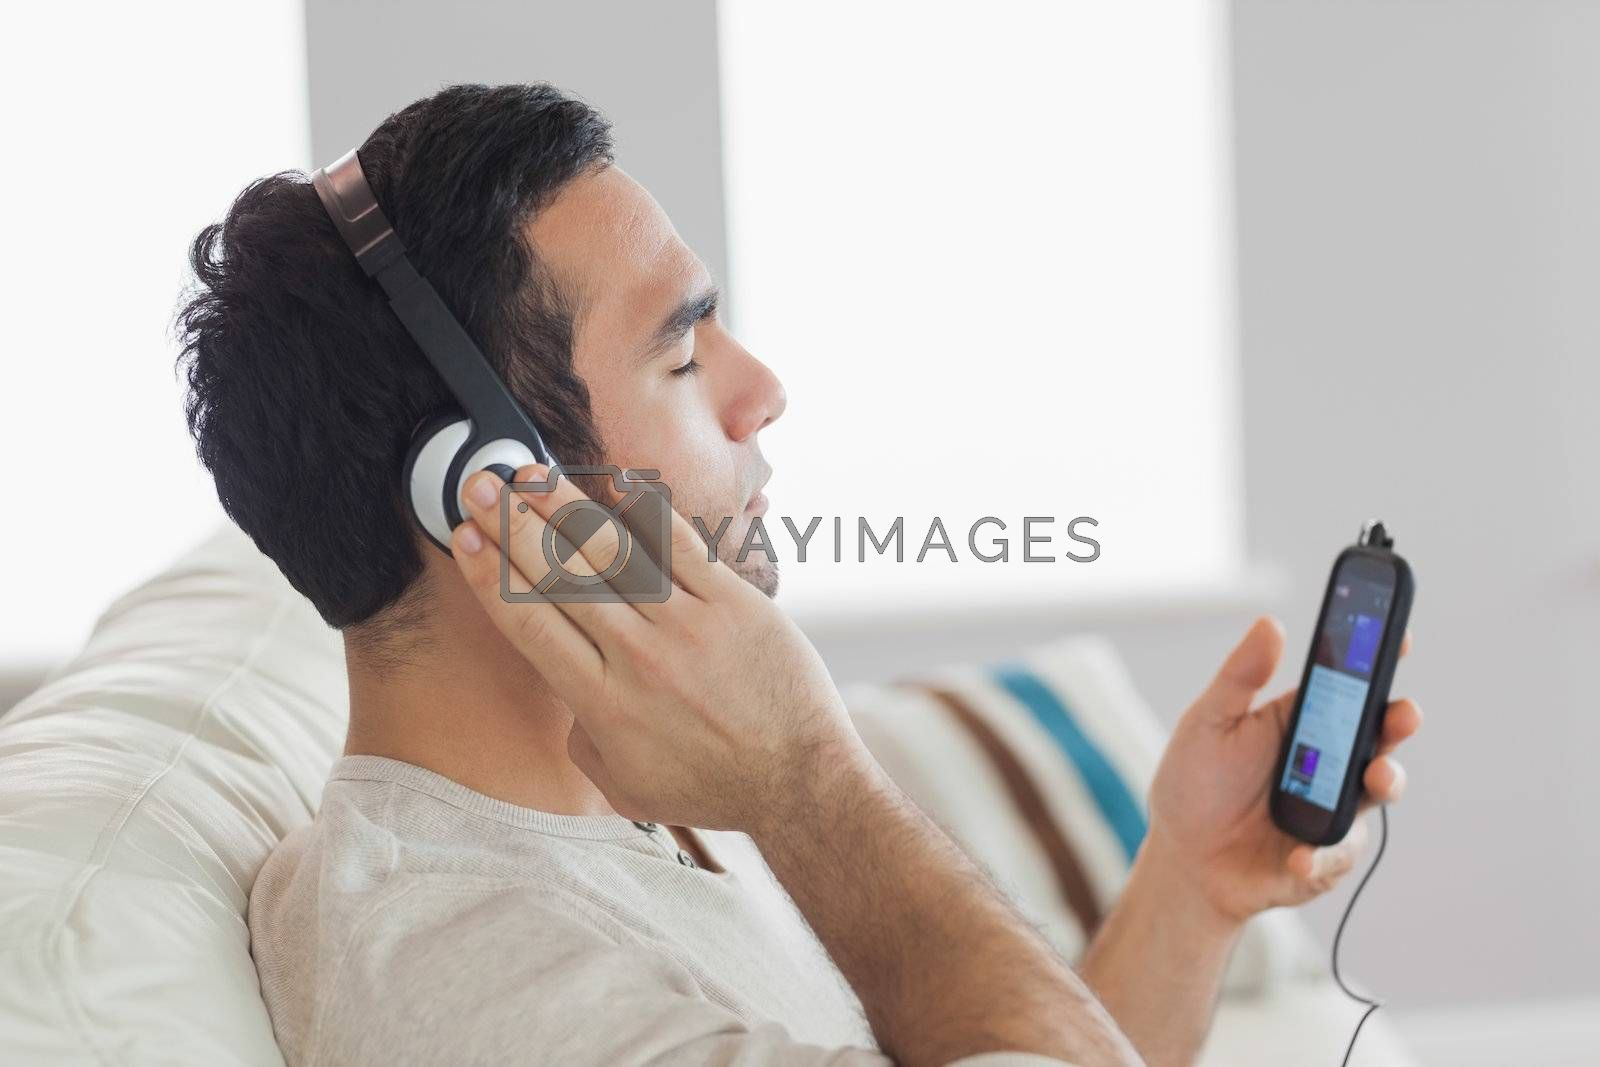 Content handsome man listening to music by Wavebreakmedia